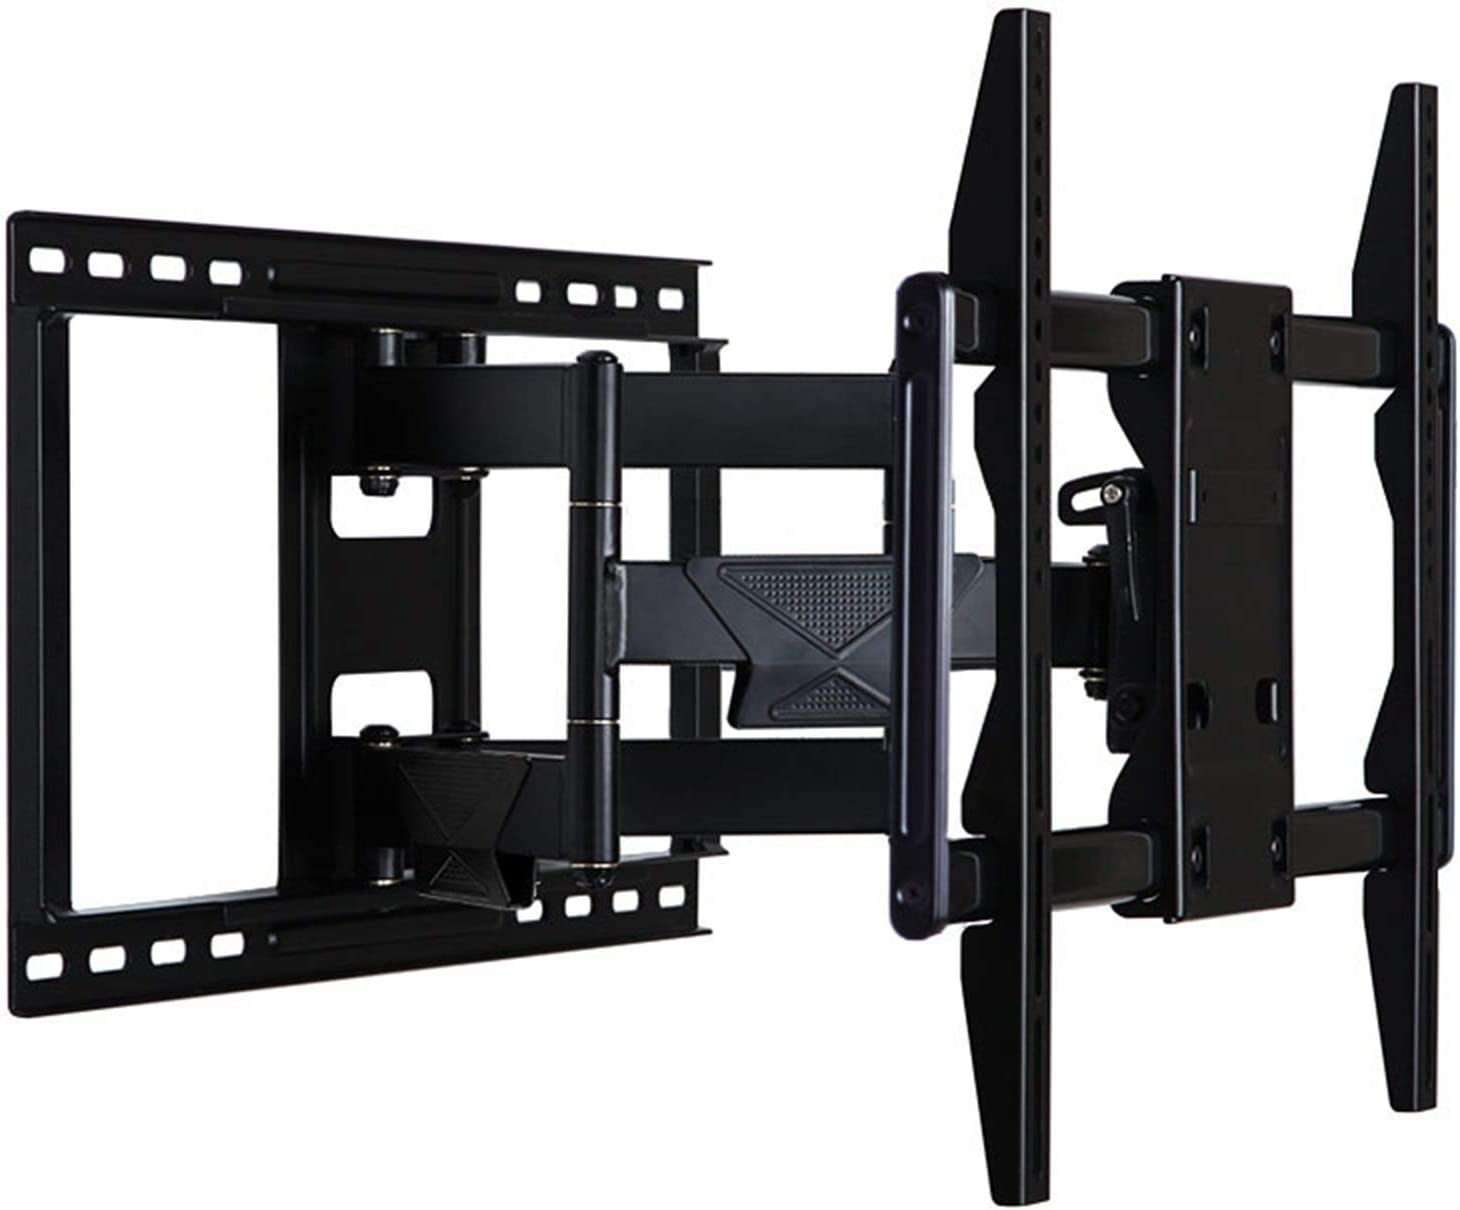 SHIJINHAO 42-84 Inch 5 ☆ popular TV Selling and selling Wall Bracket – Tilt Swivel Mount for